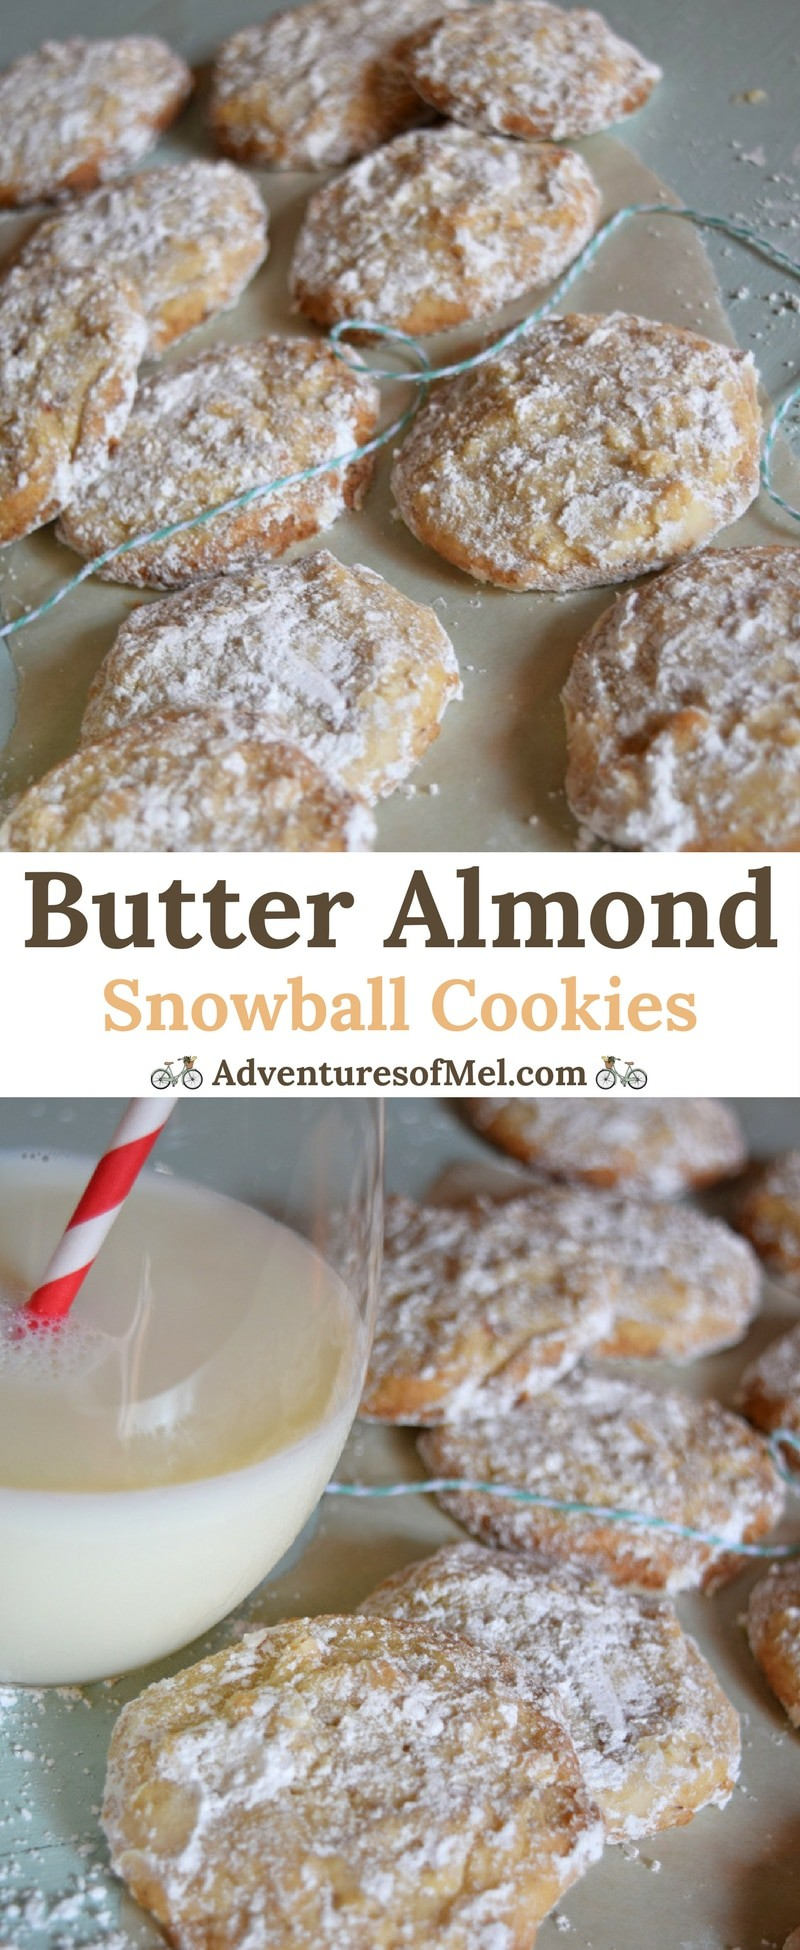 Butter Almond Snowball Cookies are one of my favorite holiday cookie recipes. Melt in your mouth deliciousness with a powdered sugar dusting. Scrumptious Christmas cookies!